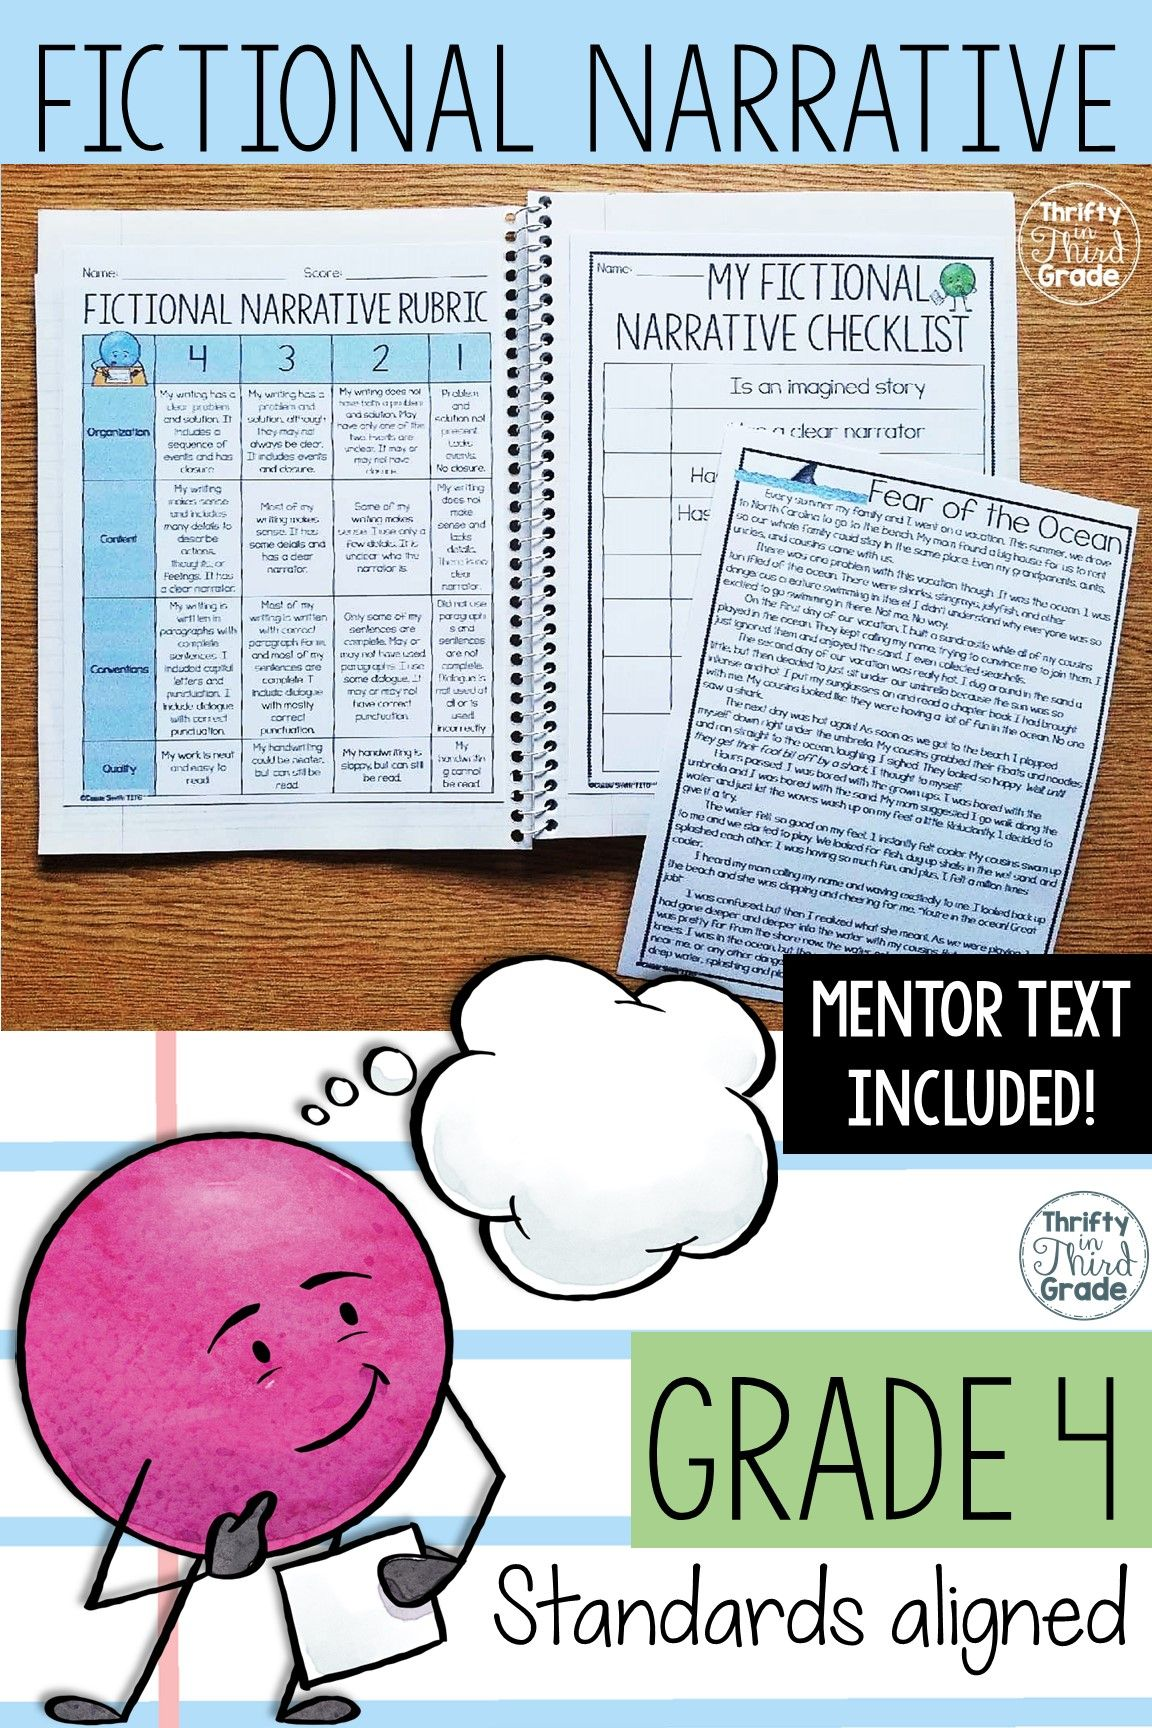 This Fictional Narrative Writing Unit Includes Mentor Text